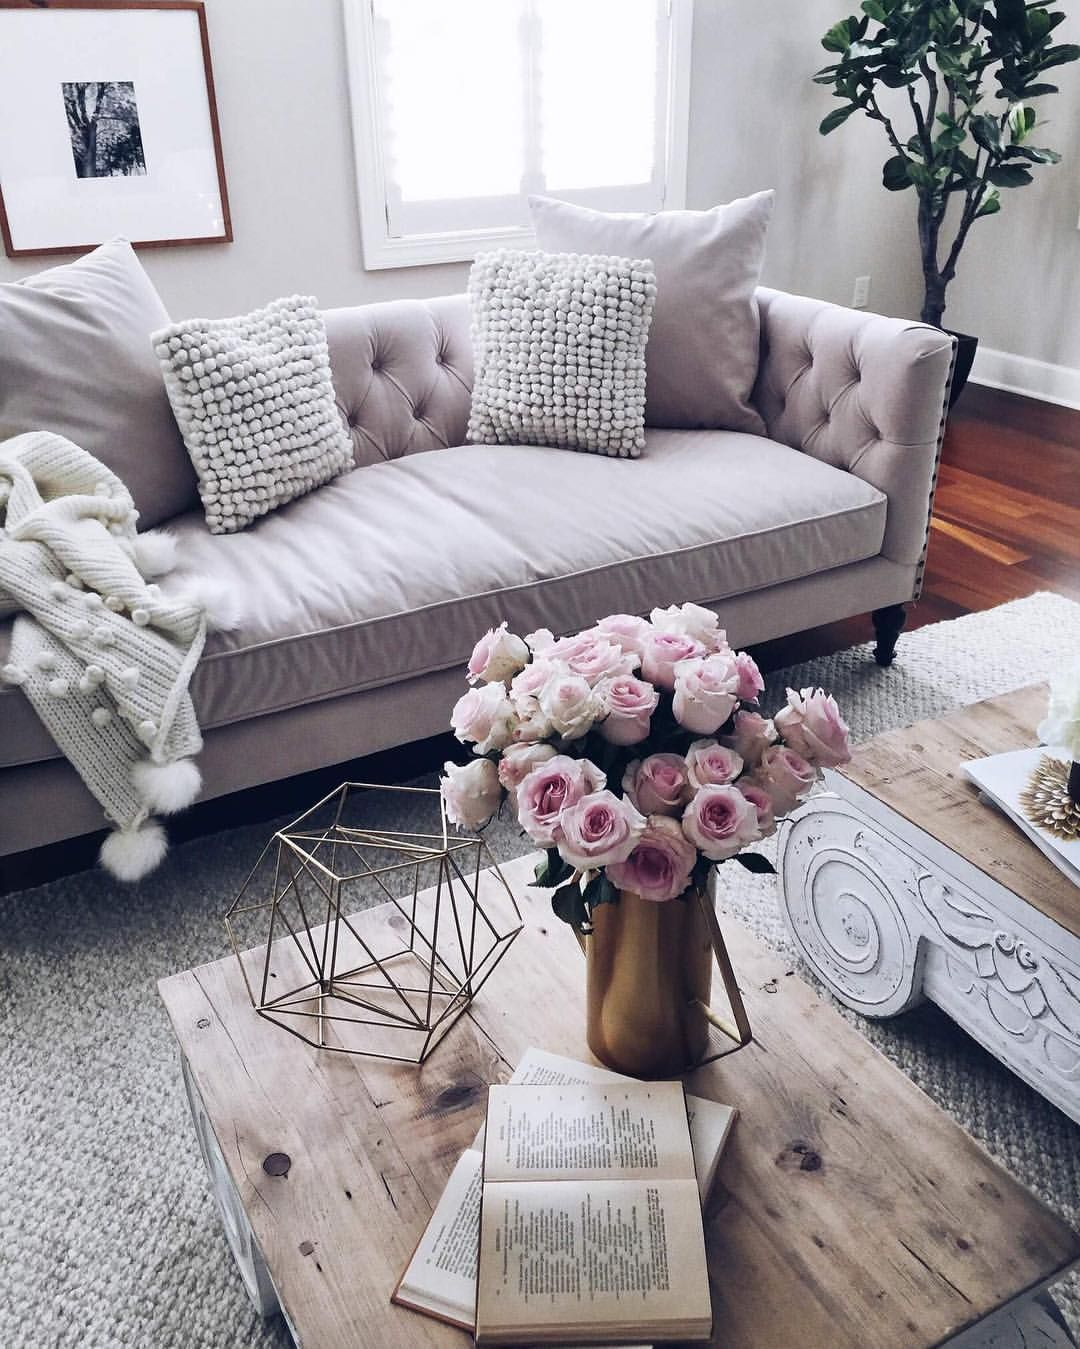 Romantic living room ideas interior design inspirations - How To Make Your Apartment Look 10x Bigger Romantic Living Roomliving